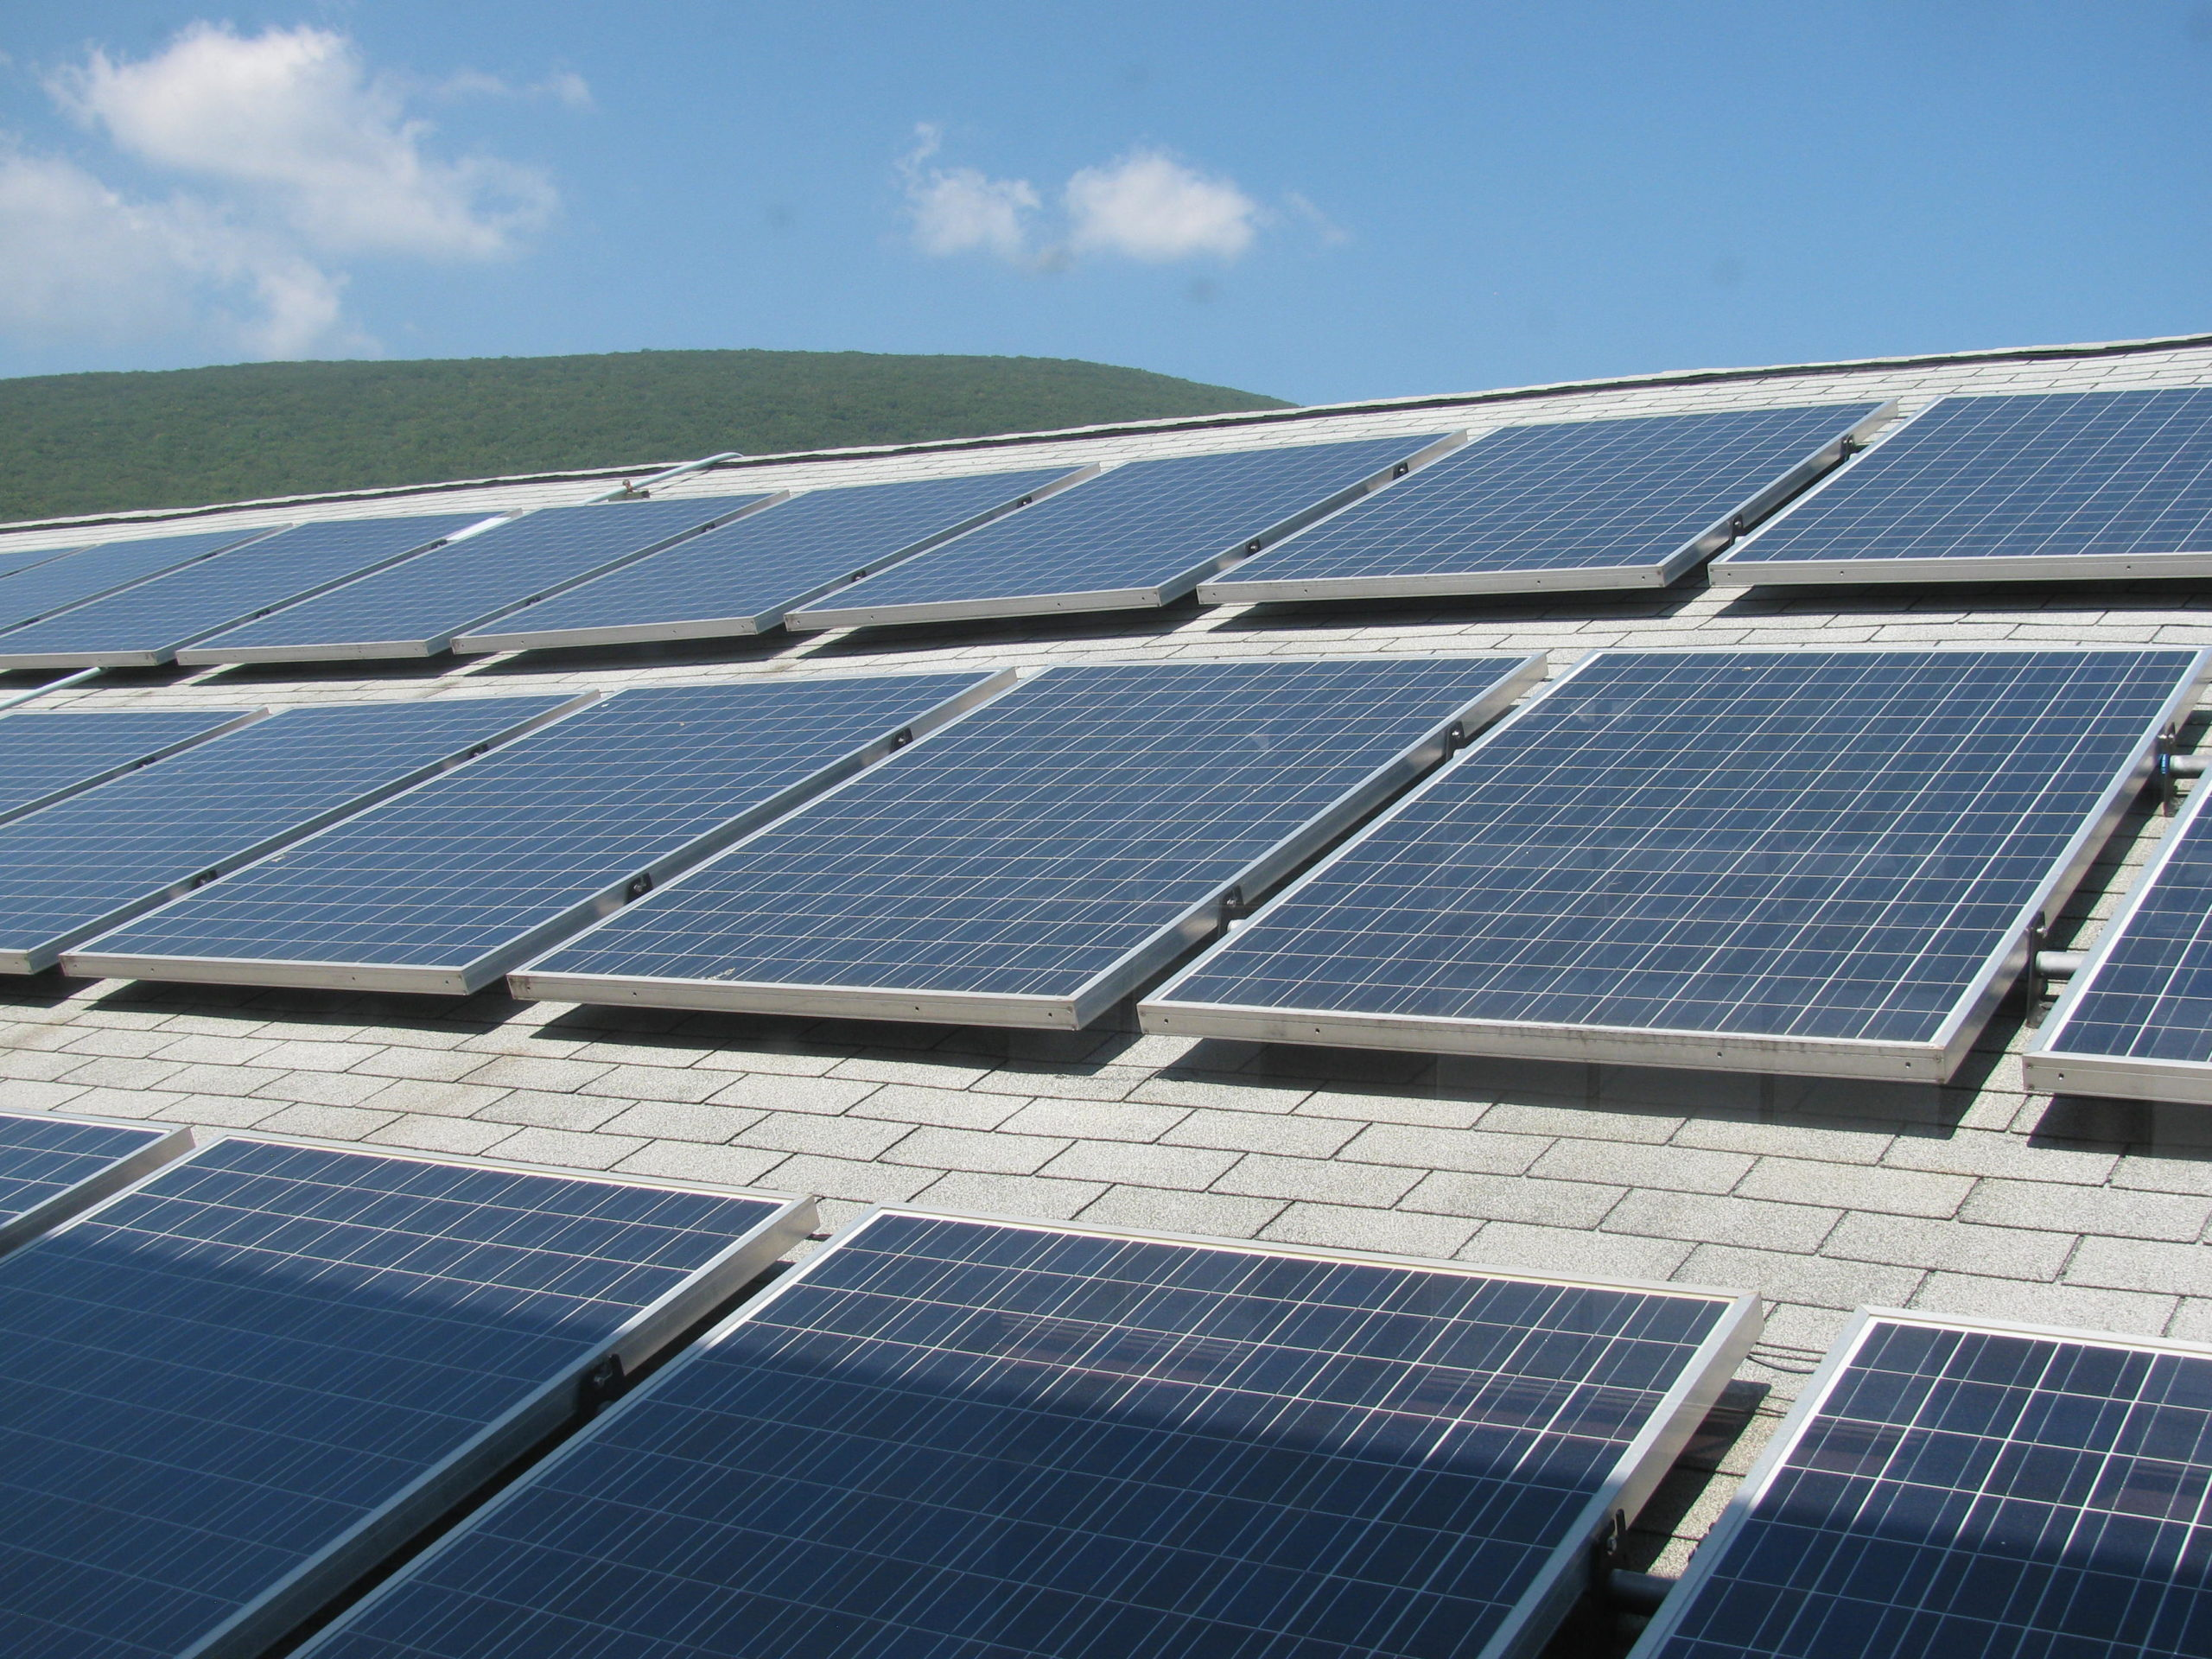 Thanks to a new tax equity with Citi, Spruce will be able to advance the purchase of over US$200 million in new solar lease and PPA projects. Image: Michael Linksvayer / Flickr